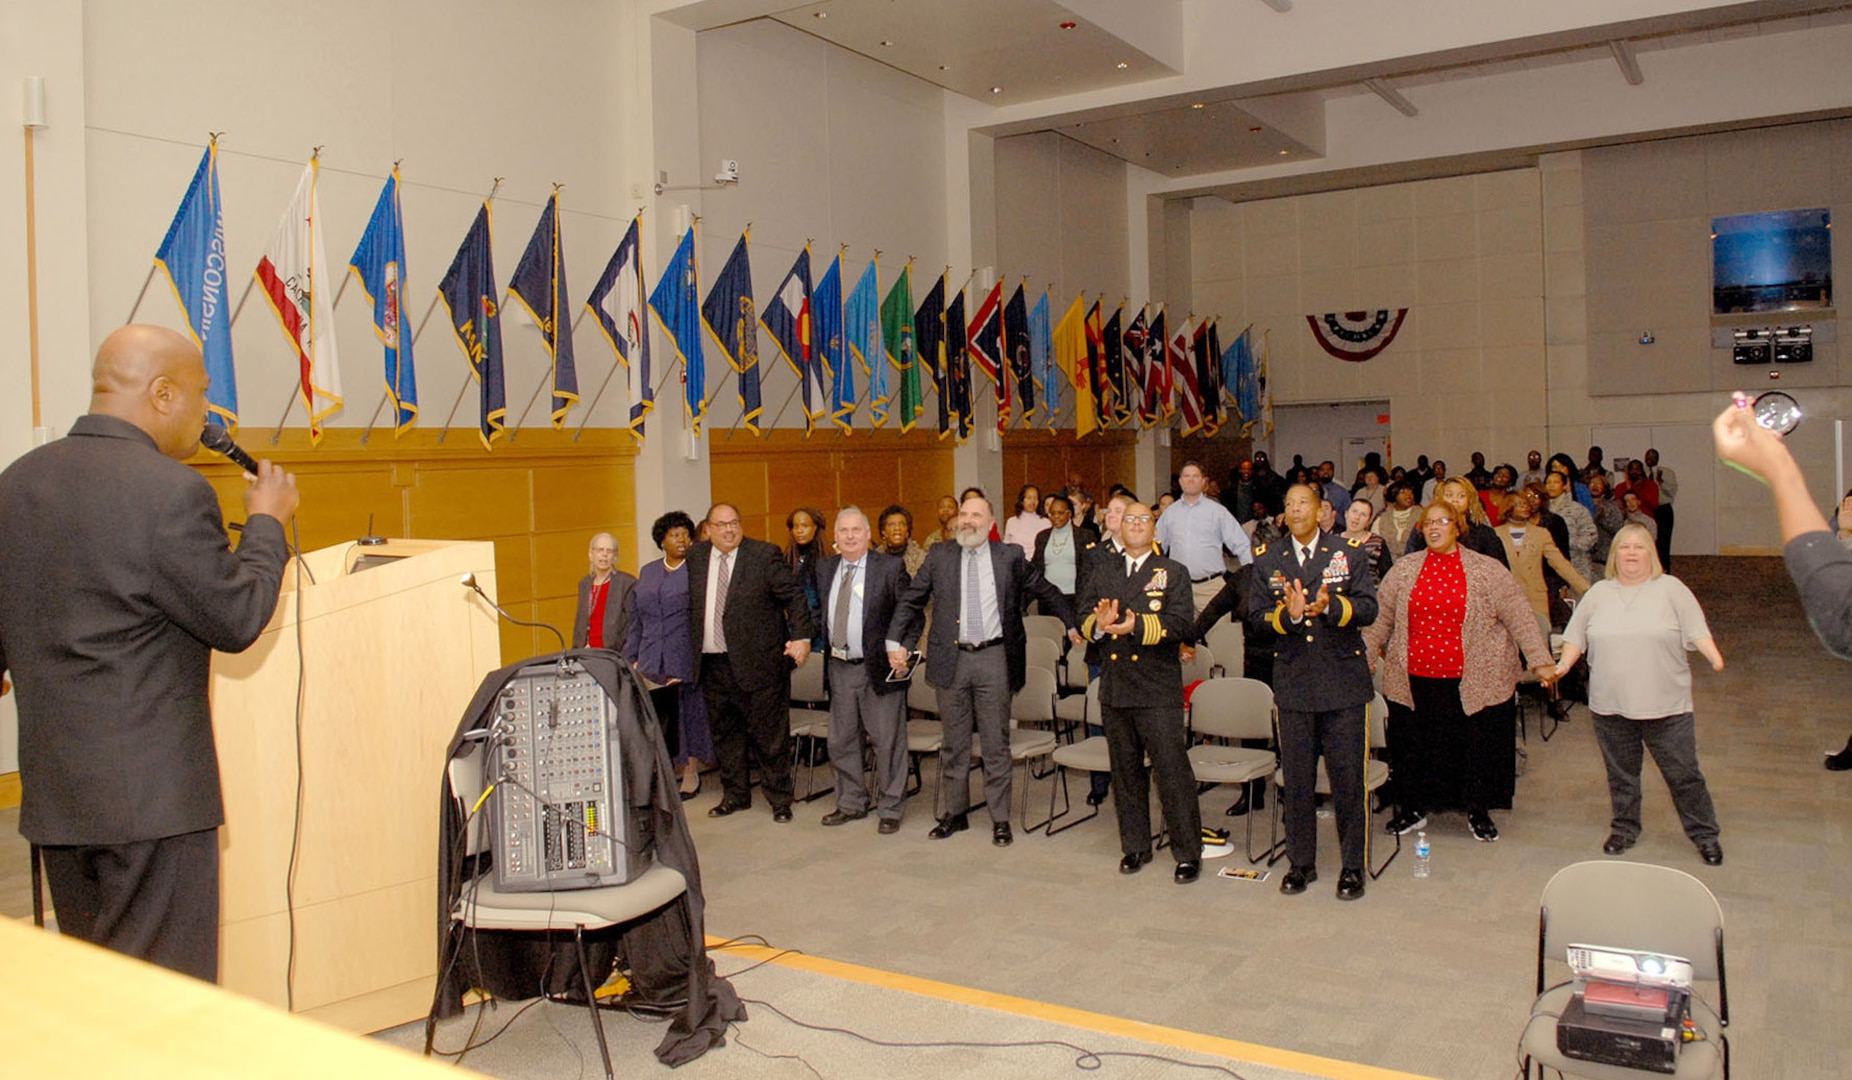 """DLA Troop Support and NAVSUP Weapons Systems Support employees sing """"We Shall Overcome"""" during a ceremony in honor of Civil Rights leader Dr. Martin Luther King, Jr. Jan. 21 in Philadelphia. Key Arts Production performed a multimedia presentation titled """"King's Dream"""" which outlined King's life from childhood, his leadership in the Civil Rights Movement and assassination in 1968."""